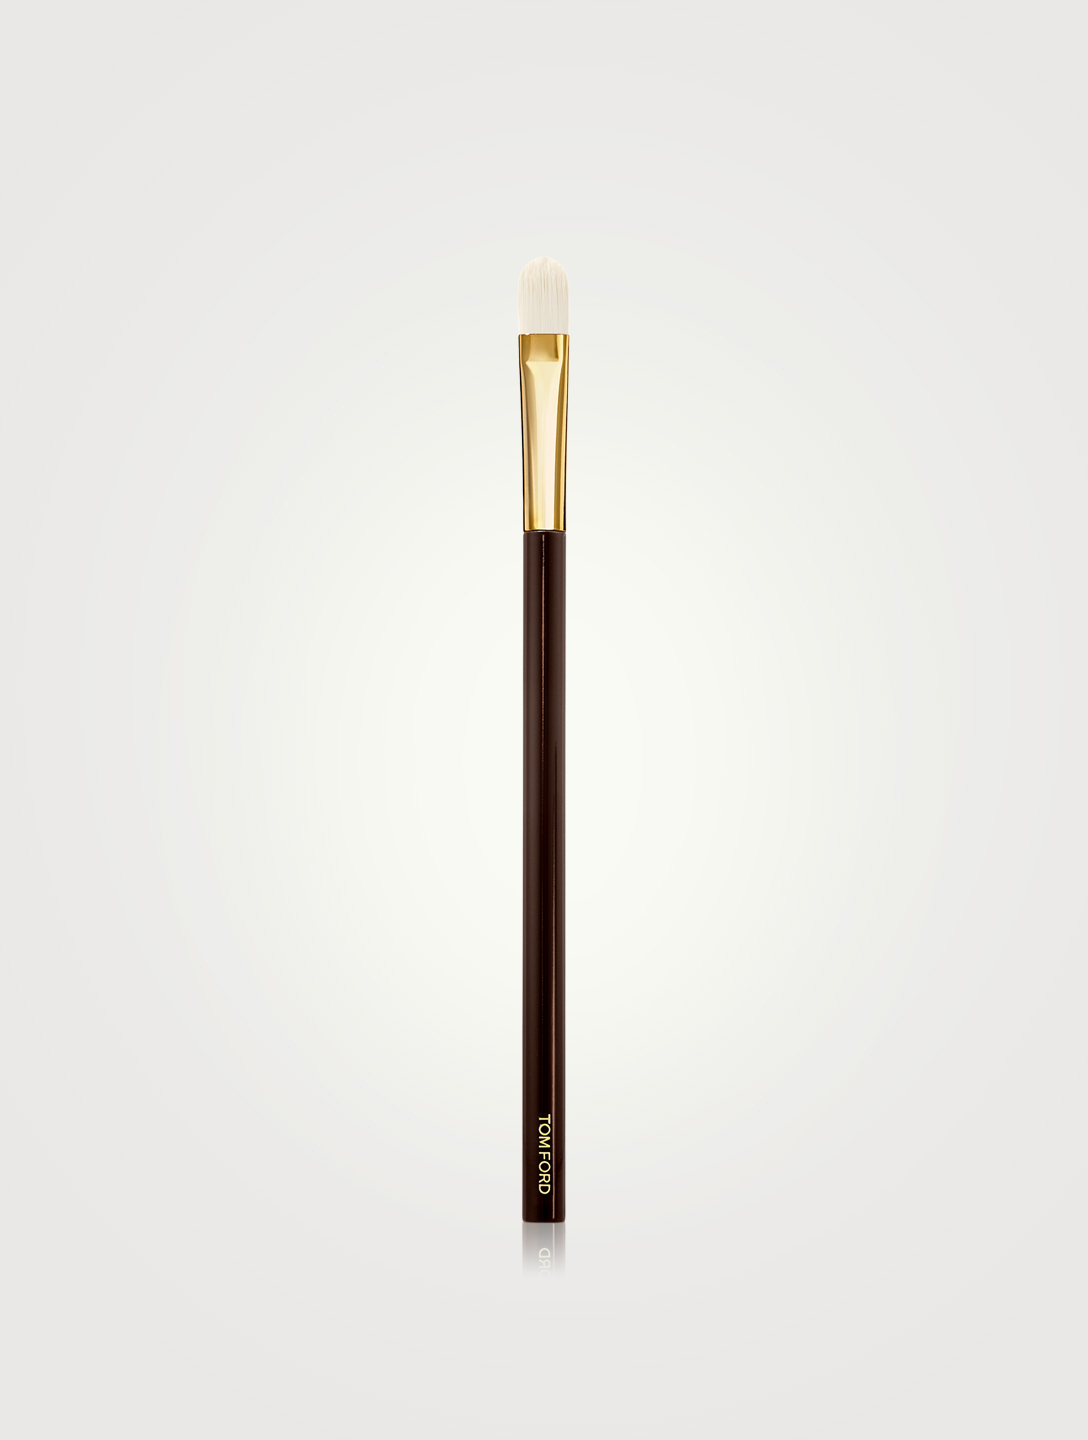 TOM FORD Concealer Brush 03 Beauty